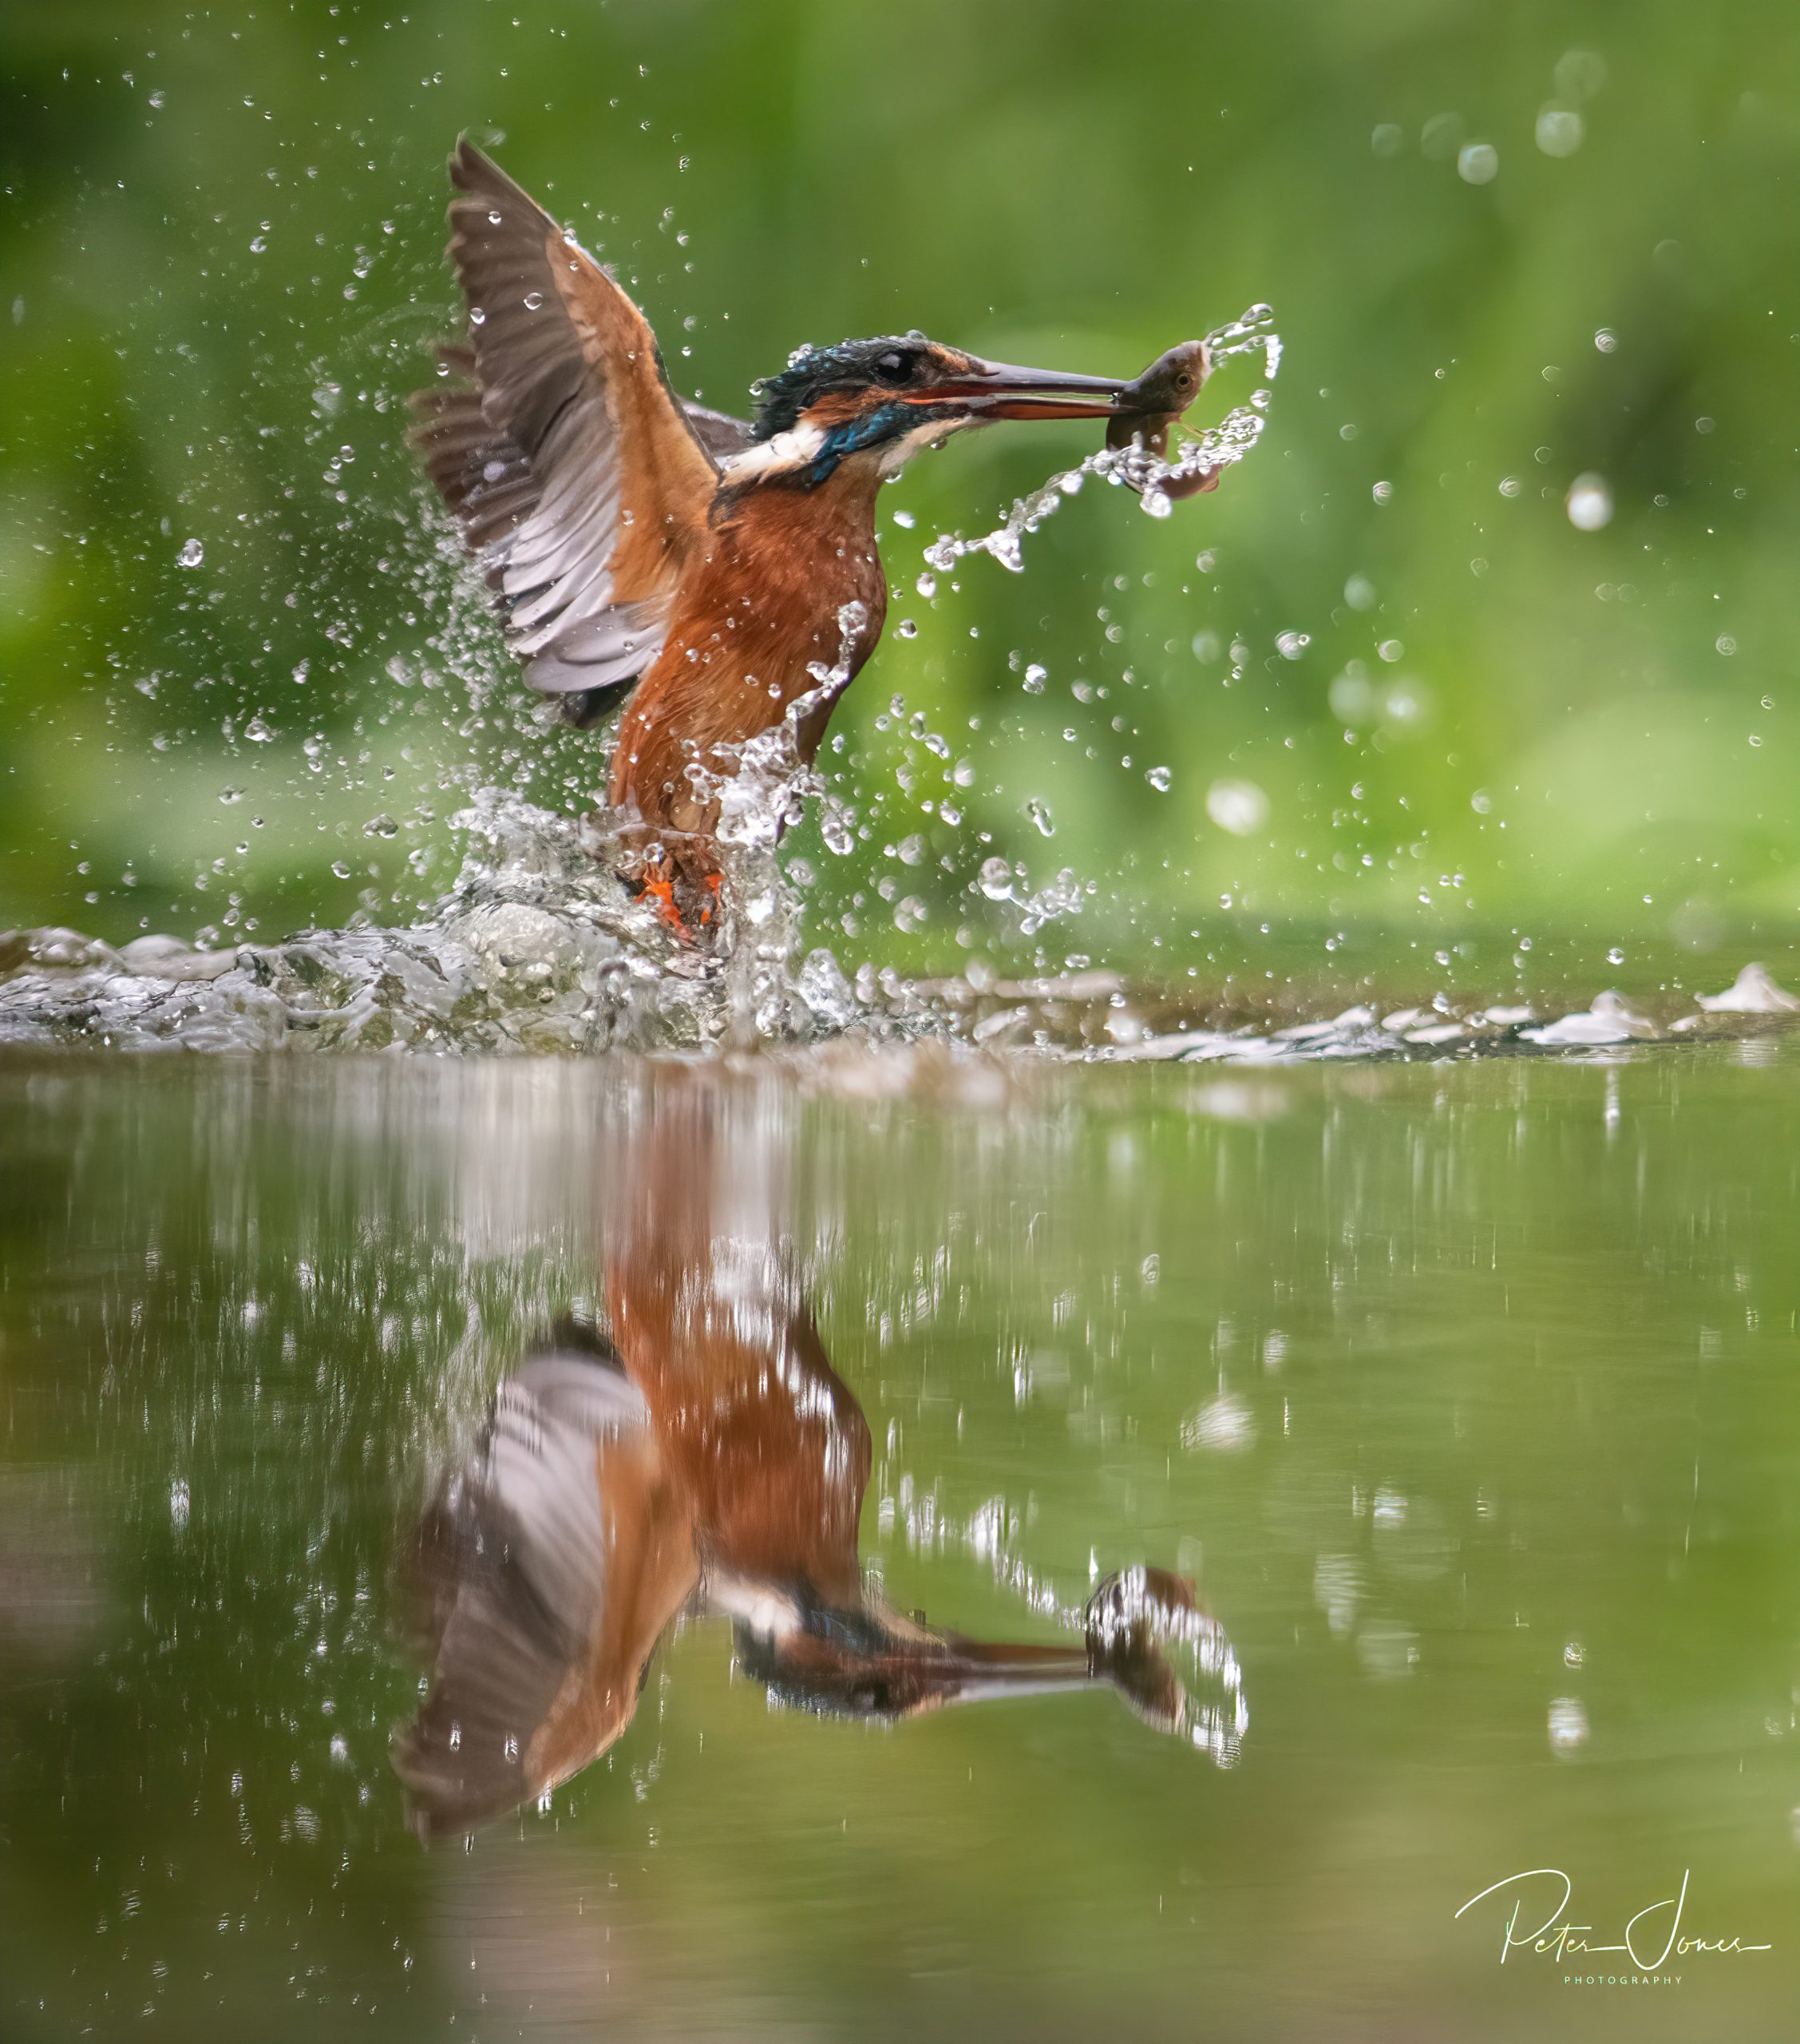 Kingfisher in flight with fish